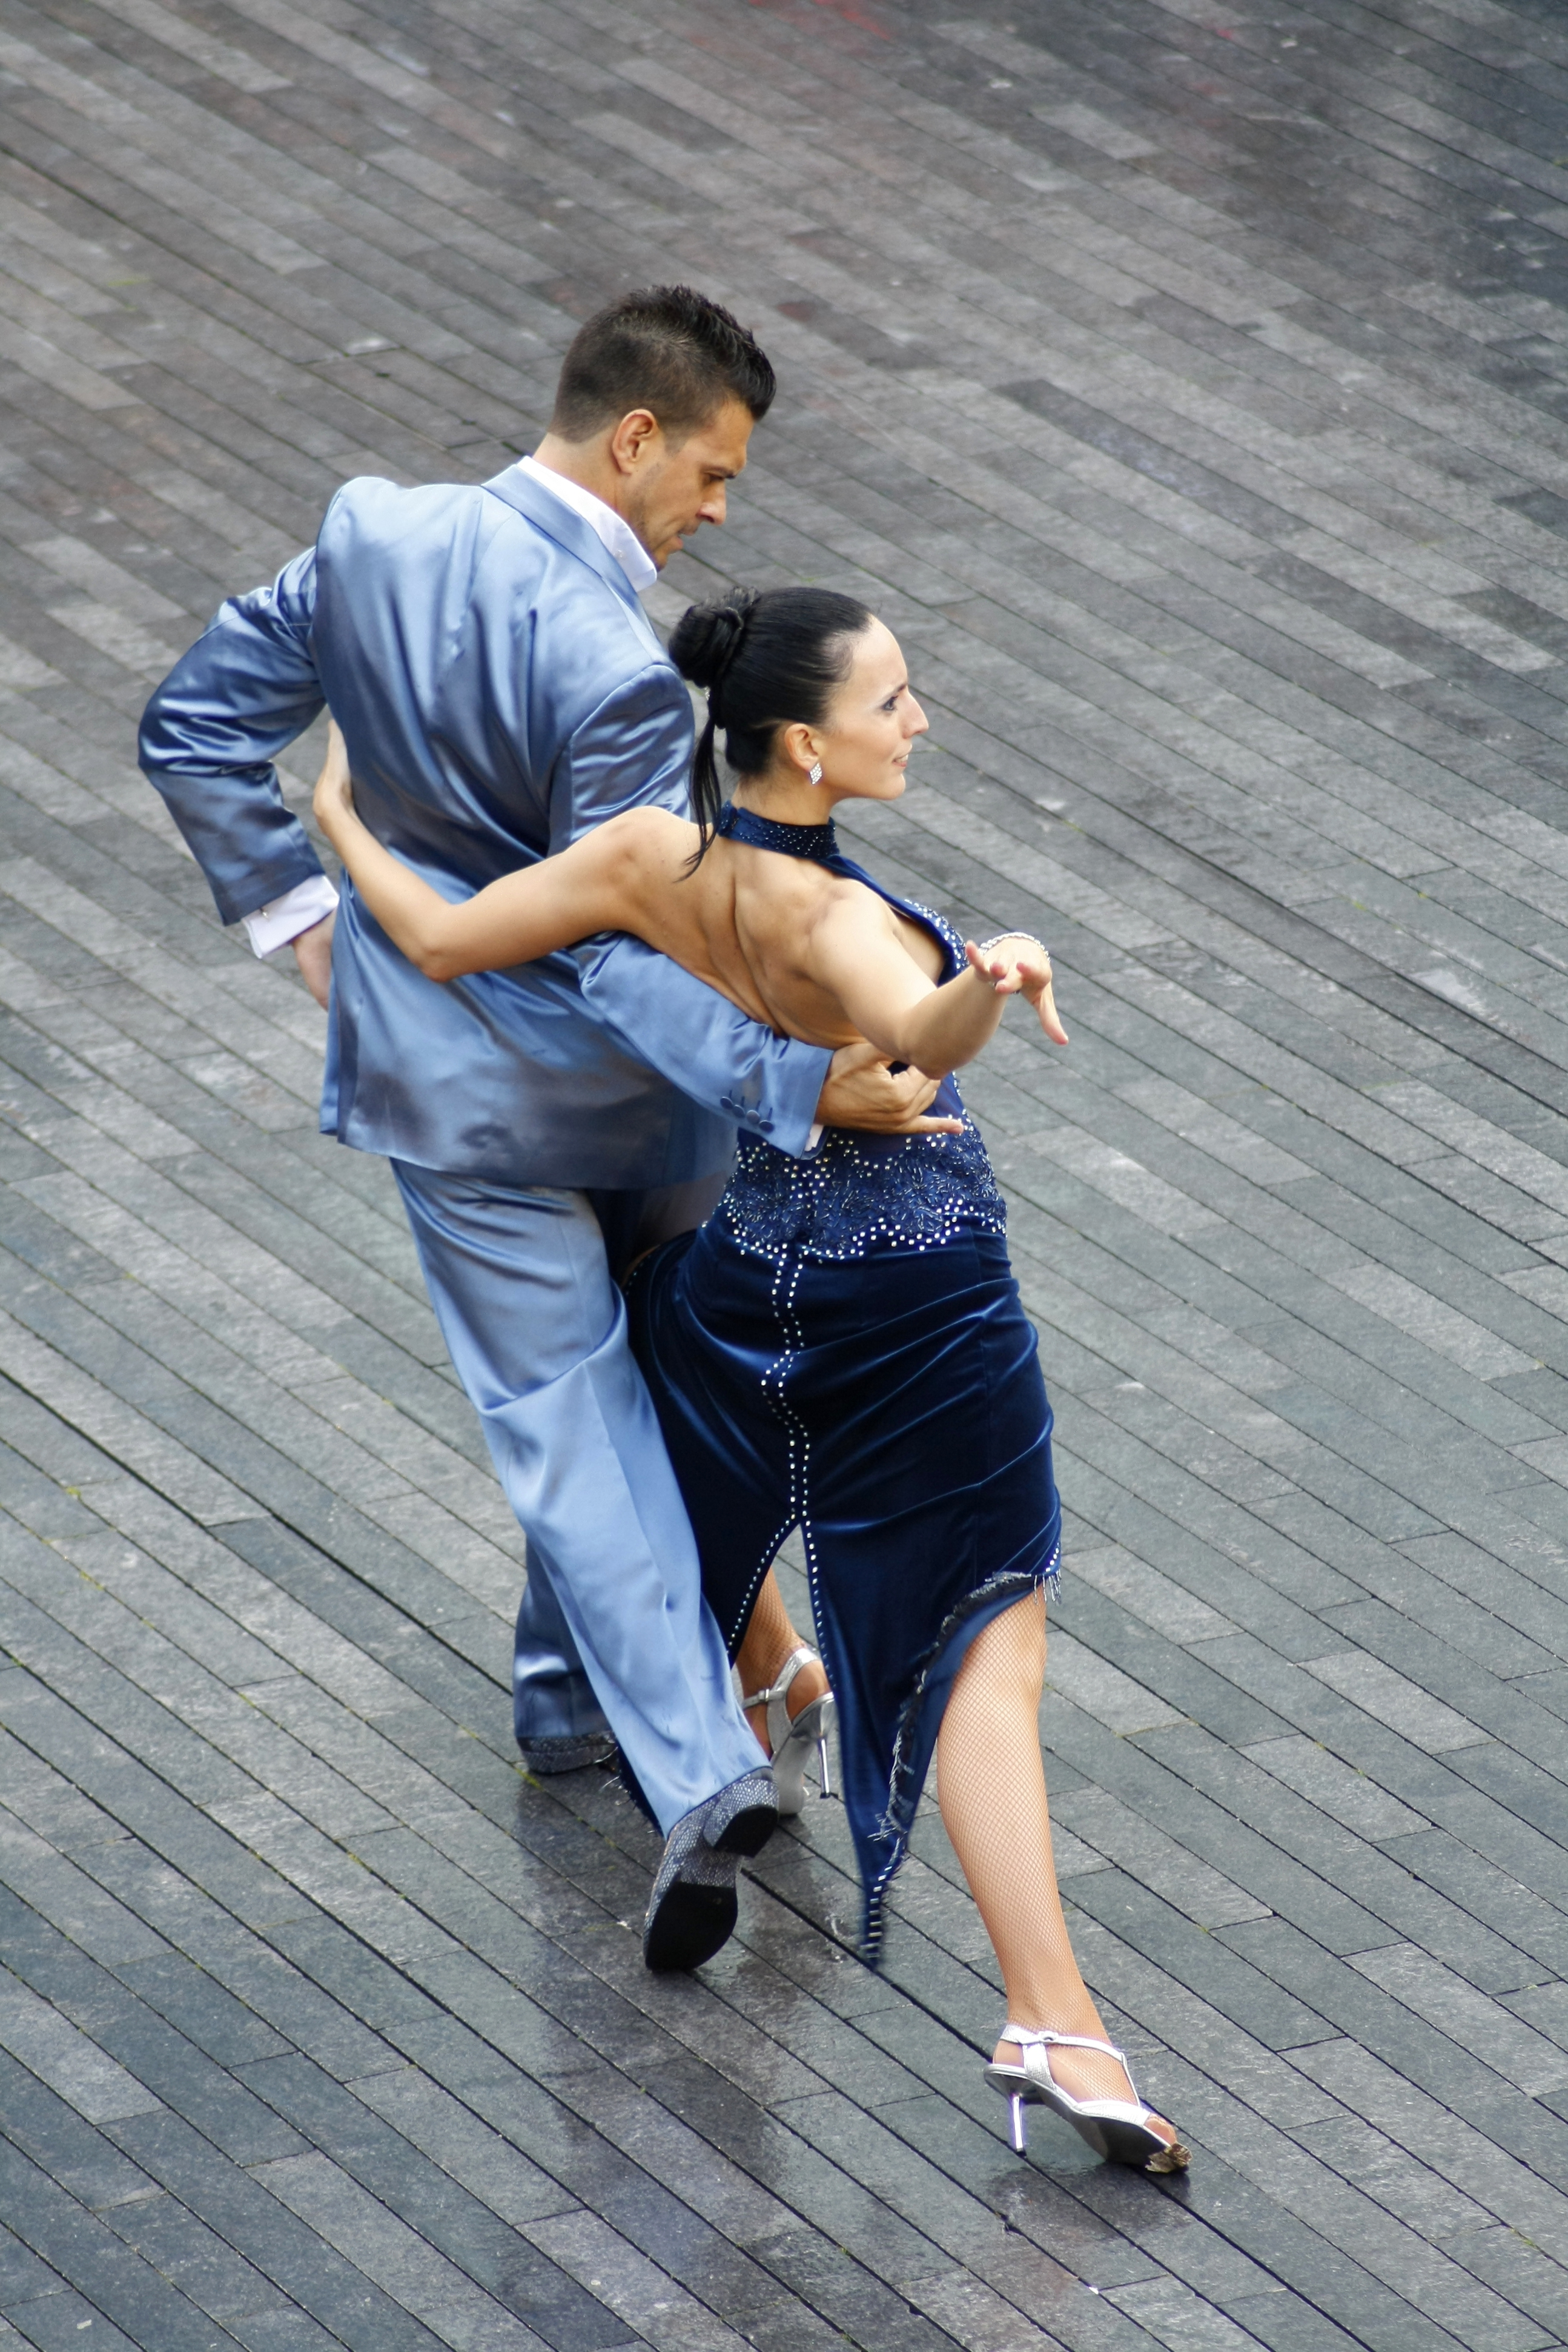 P19_stockvault-the-dancers127910